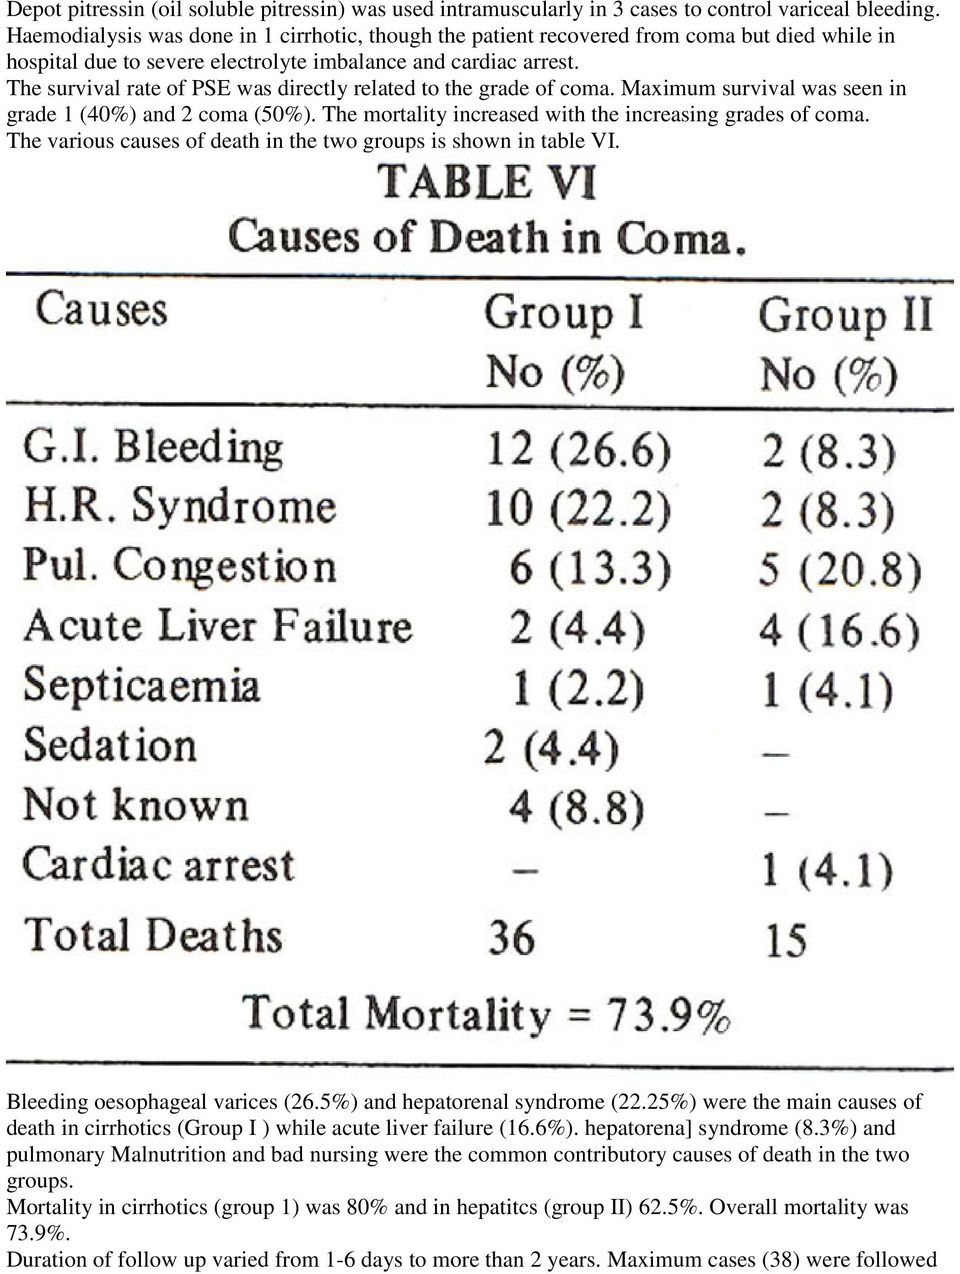 The survival rate of PSE was directly related to the grade of coma. Maximum survival was seen in grade 1 (40%) and 2 coma (50%). The mortality increased with the increasing grades of coma.